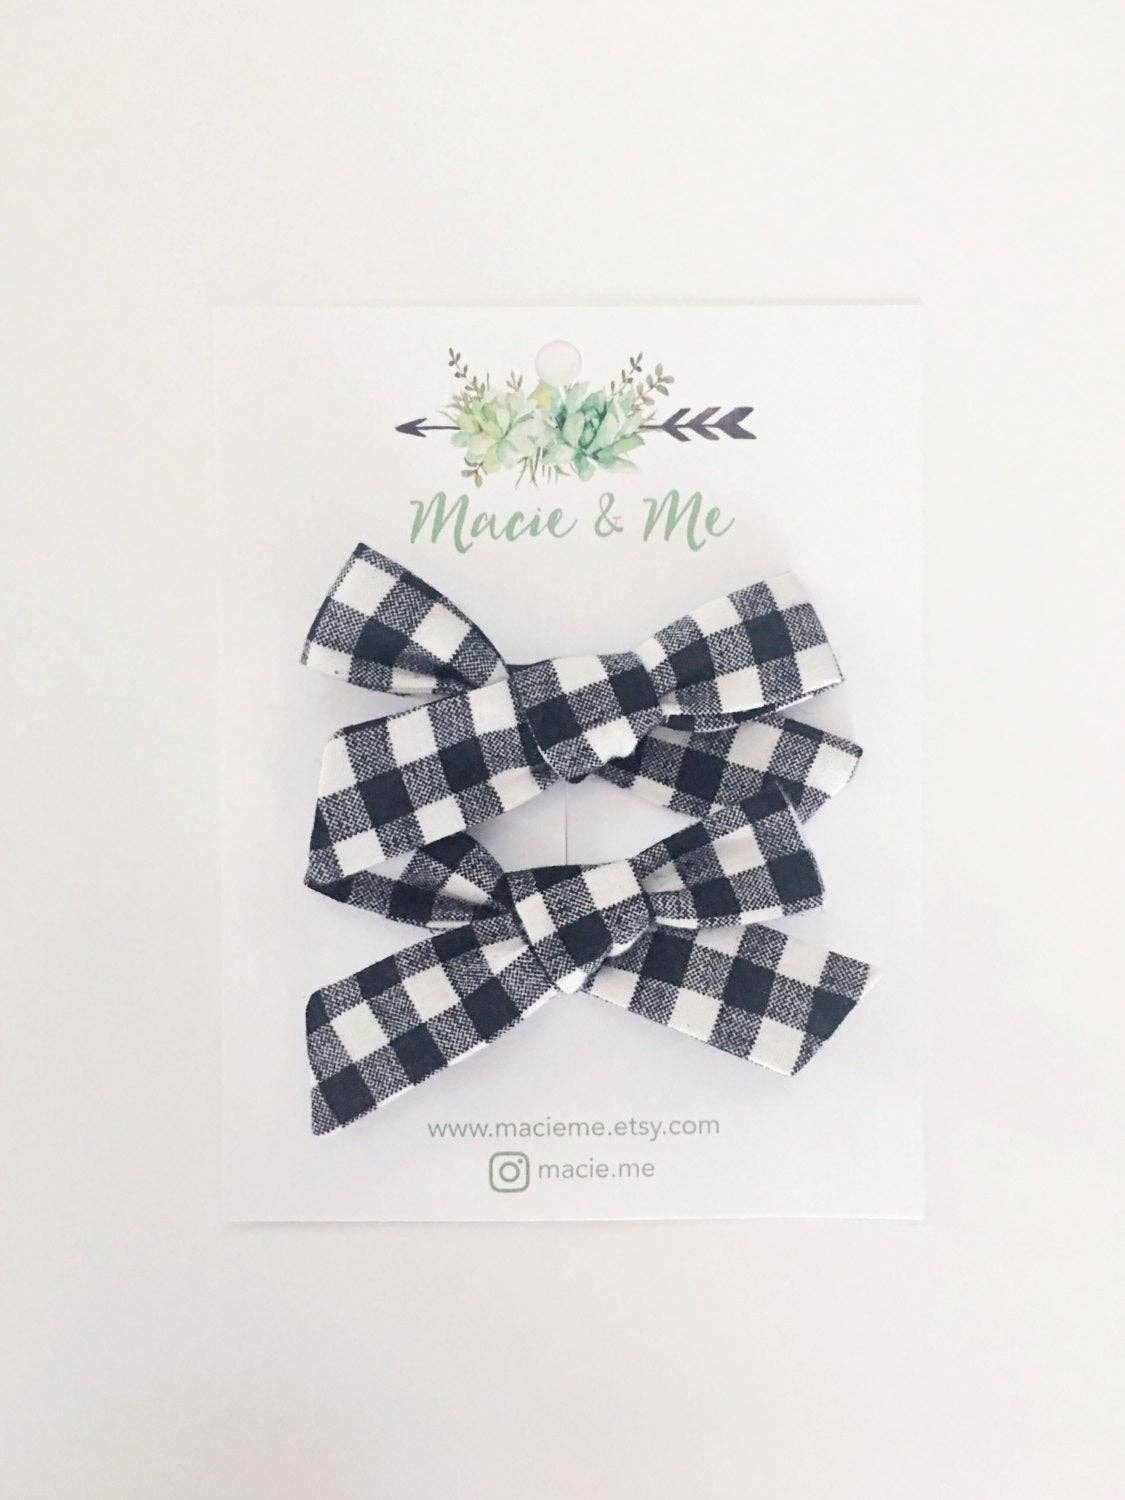 Macie & Me Black and Cream Gingham 2 Bow Clips